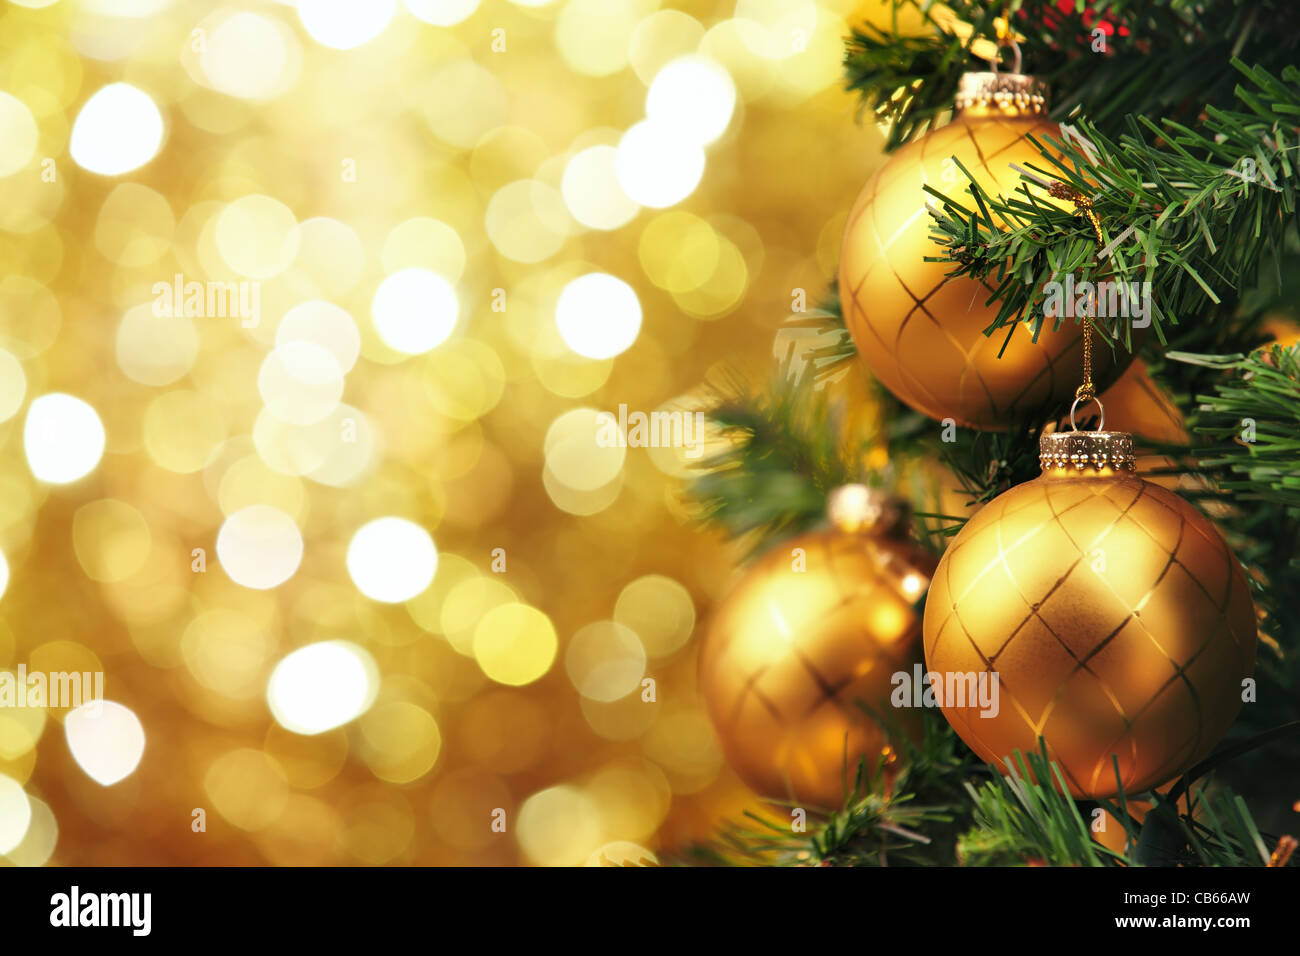 Closeup of Christmas-tree decorations - Stock Image